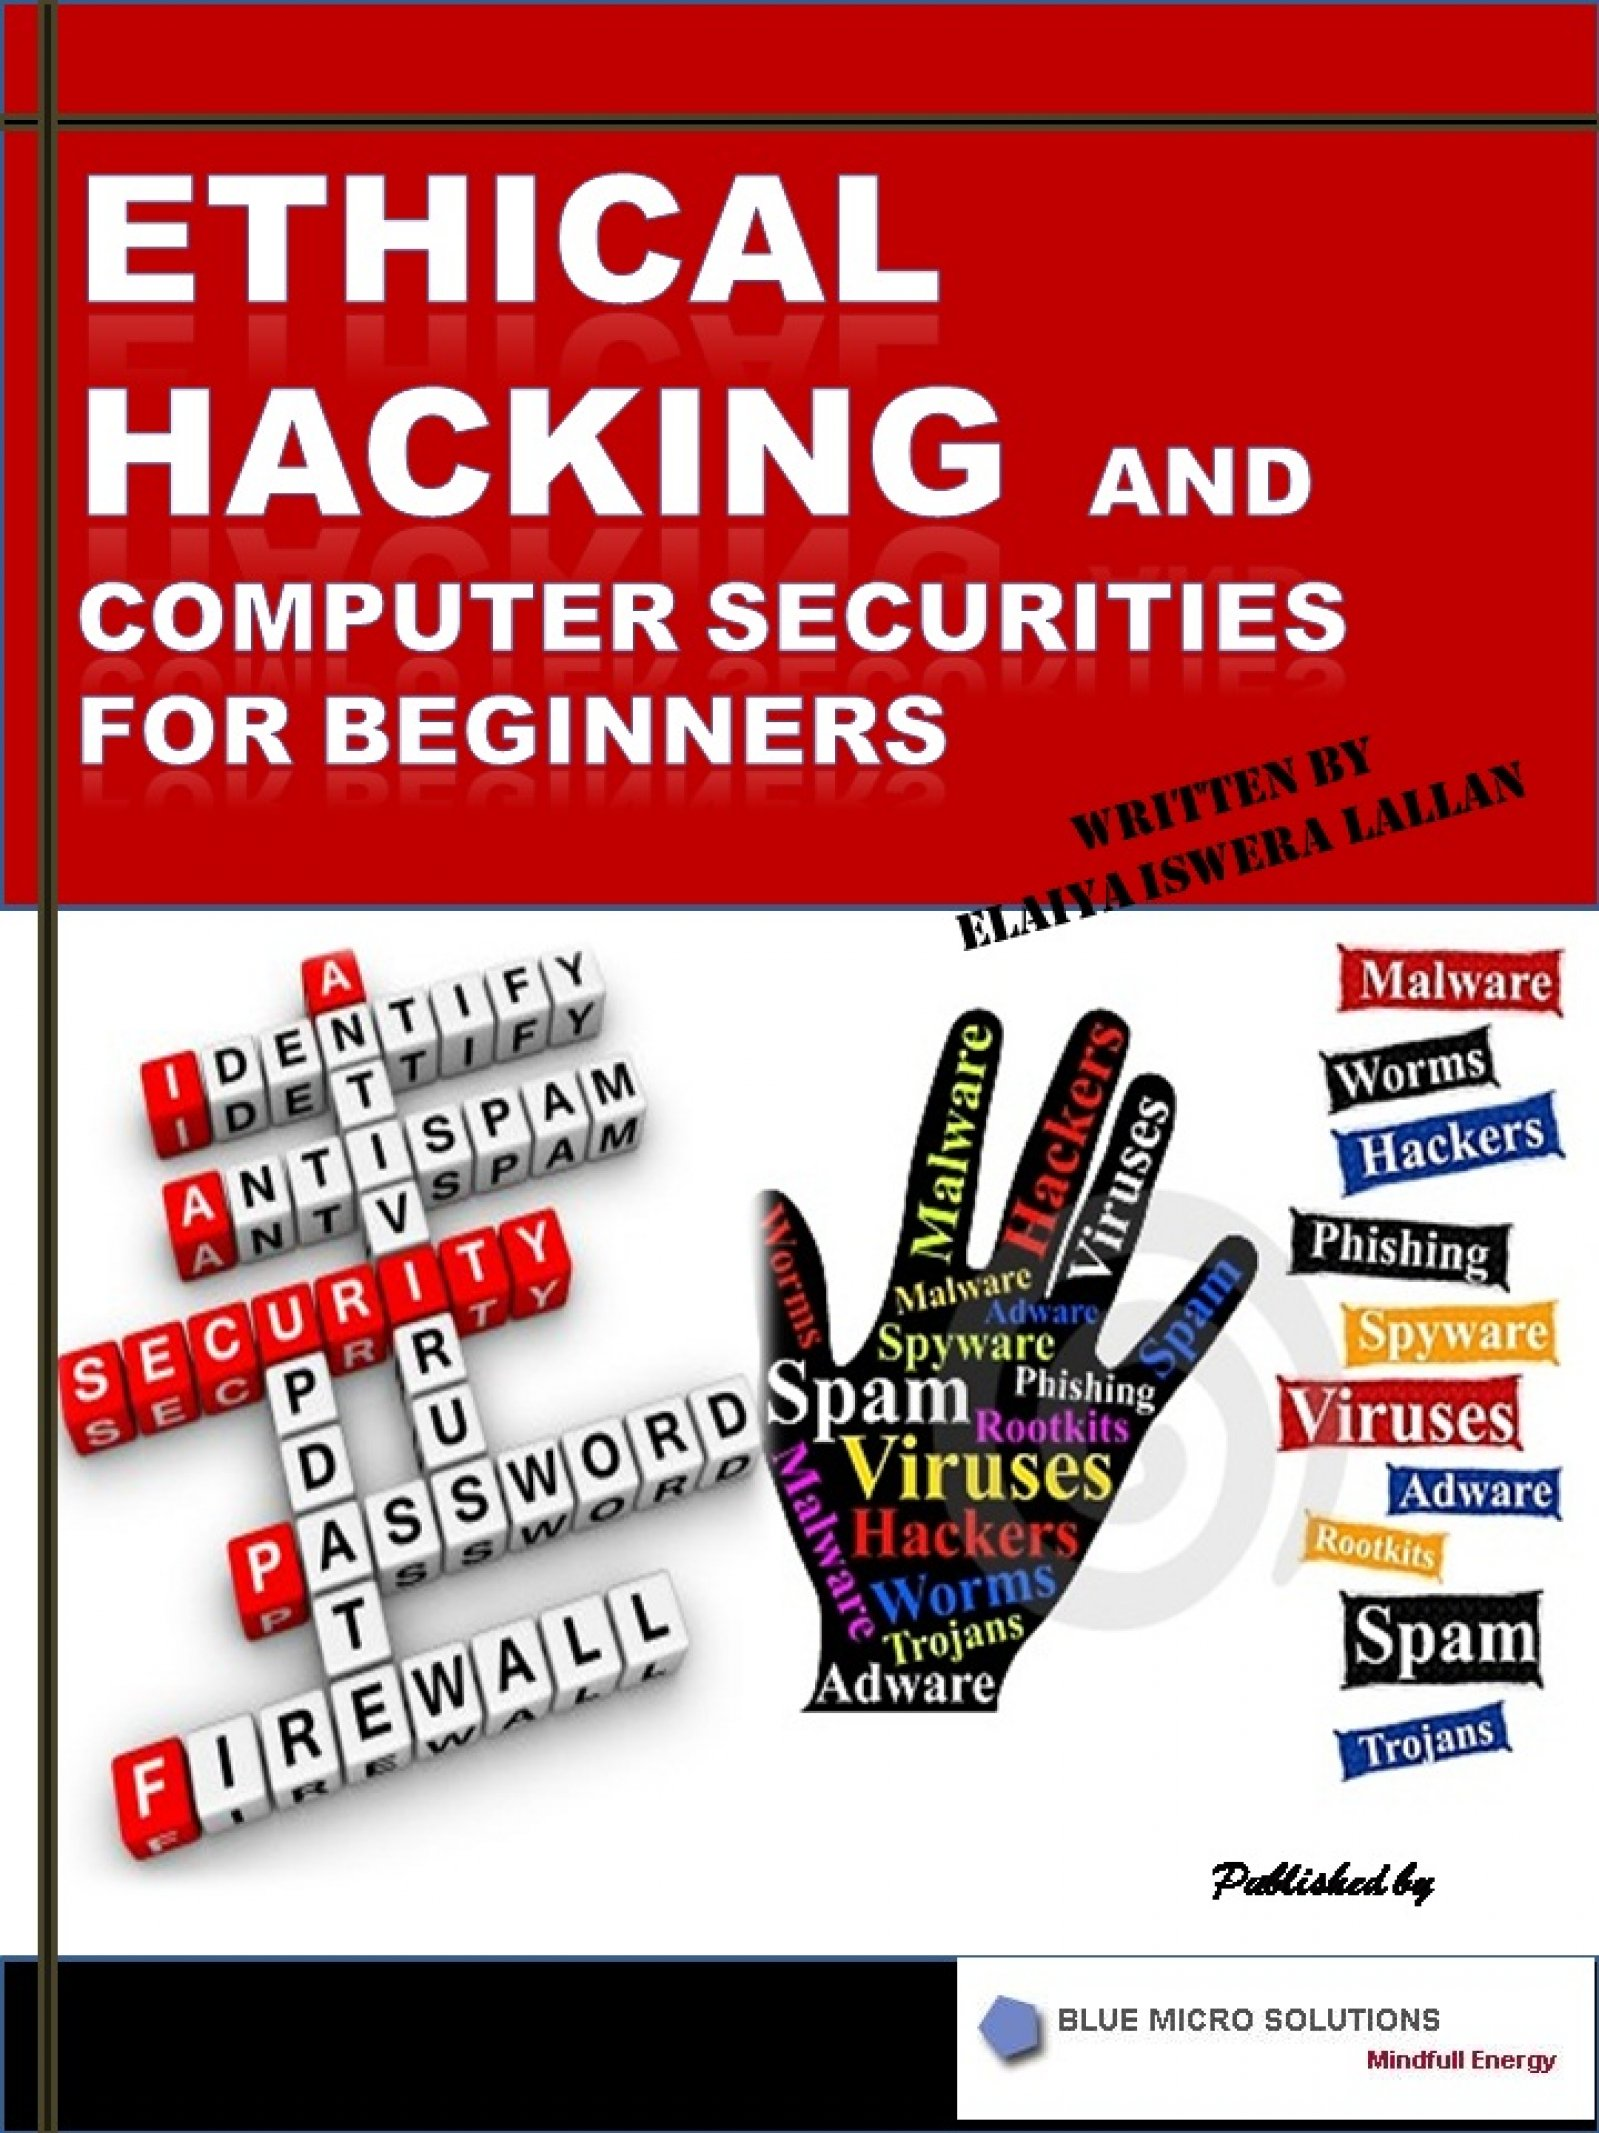 Ethical Hacking and Computer Securities For Beginners, an Ebook by Dr  Elaiya Iswera Lallan